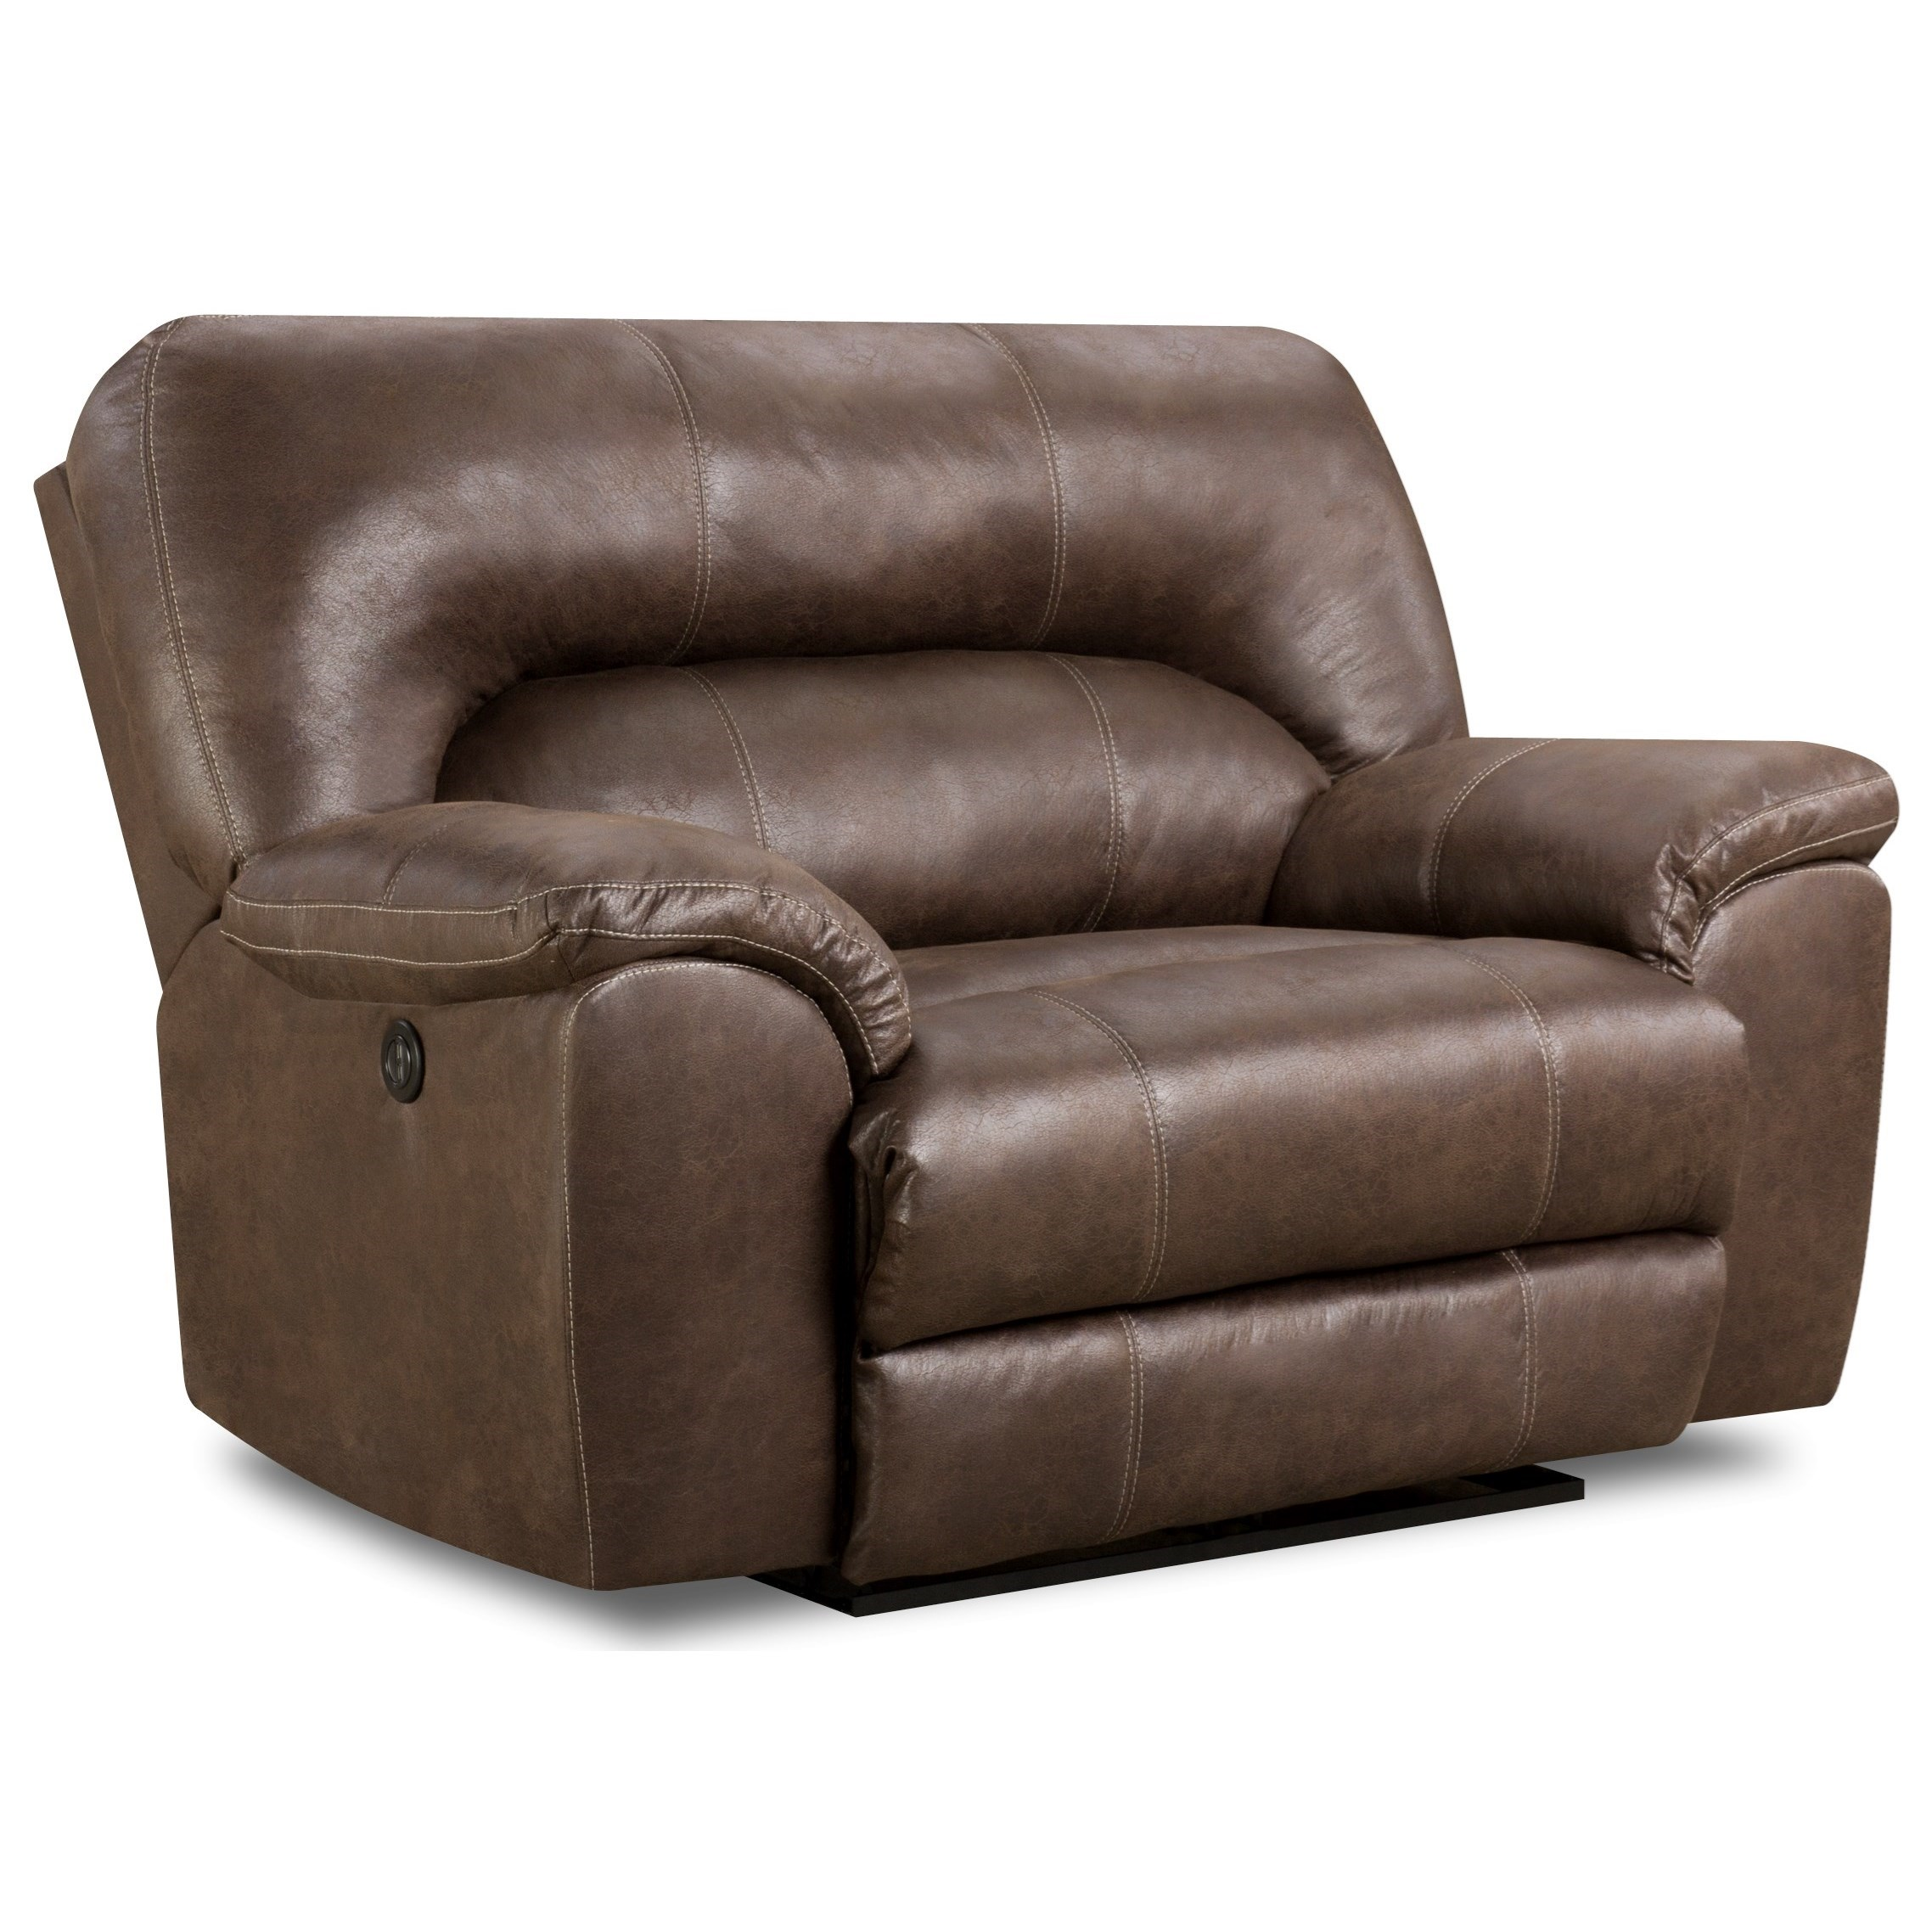 7409 Power Recliner by Peak Living at Prime Brothers Furniture